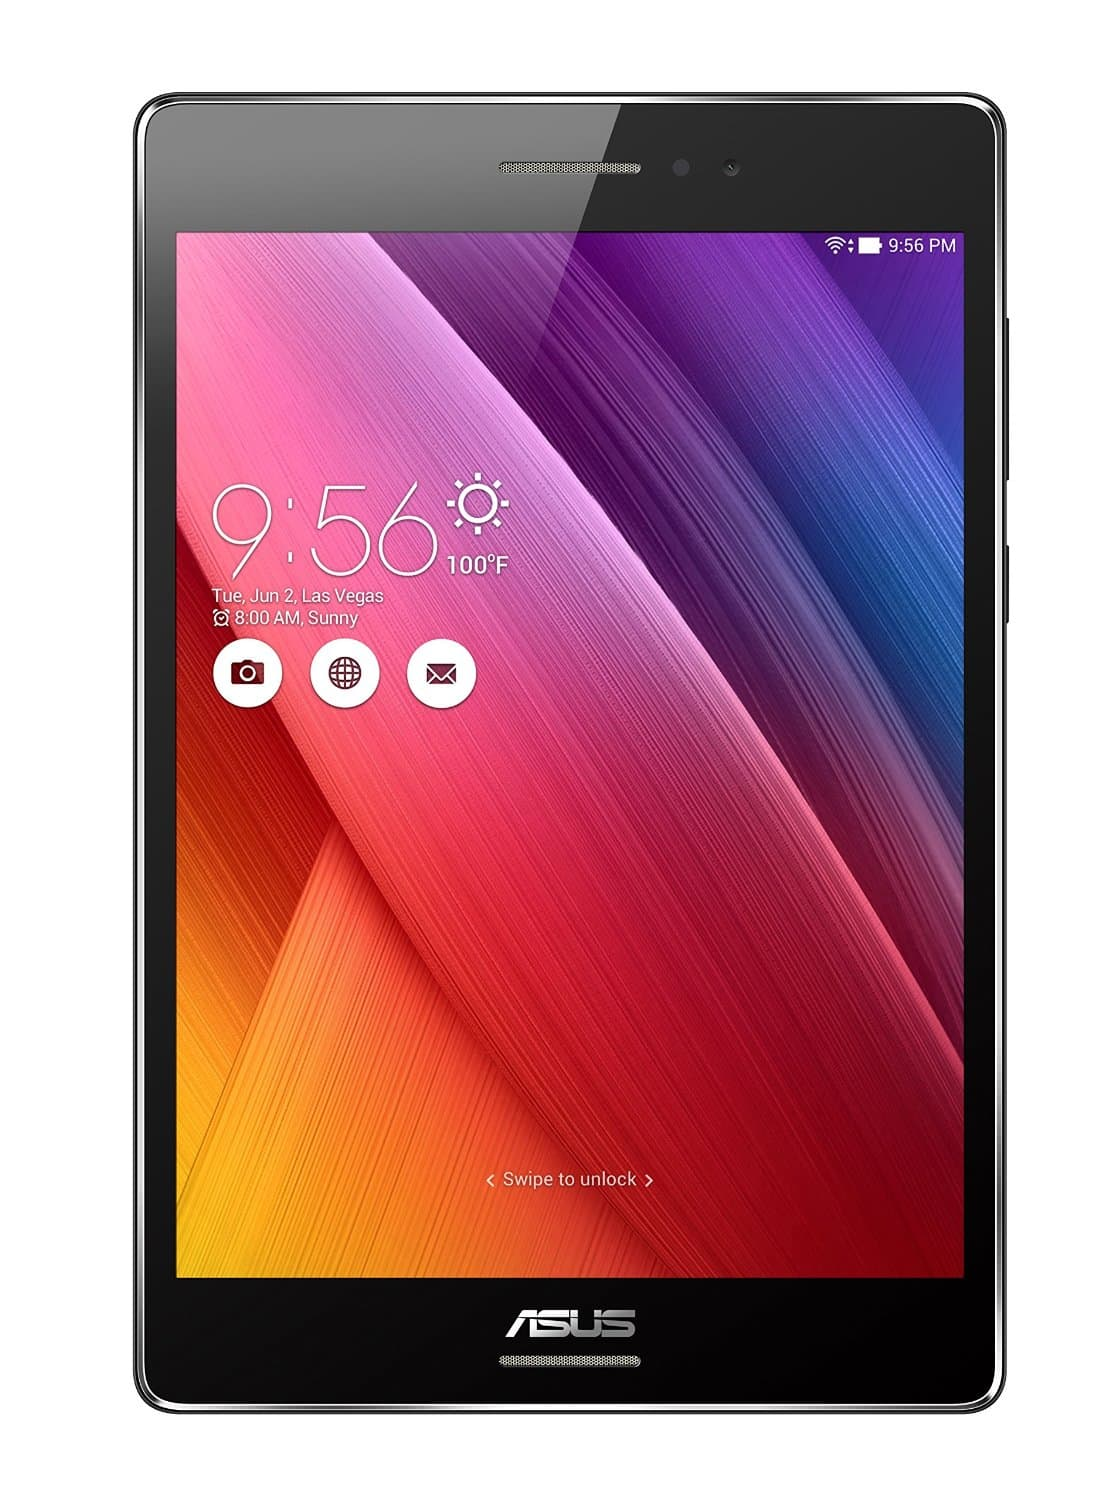 ASUS ZenPad S 8.0 for $169 or $269 on Amazon, free shipping with prime.  ($30 off regular price)